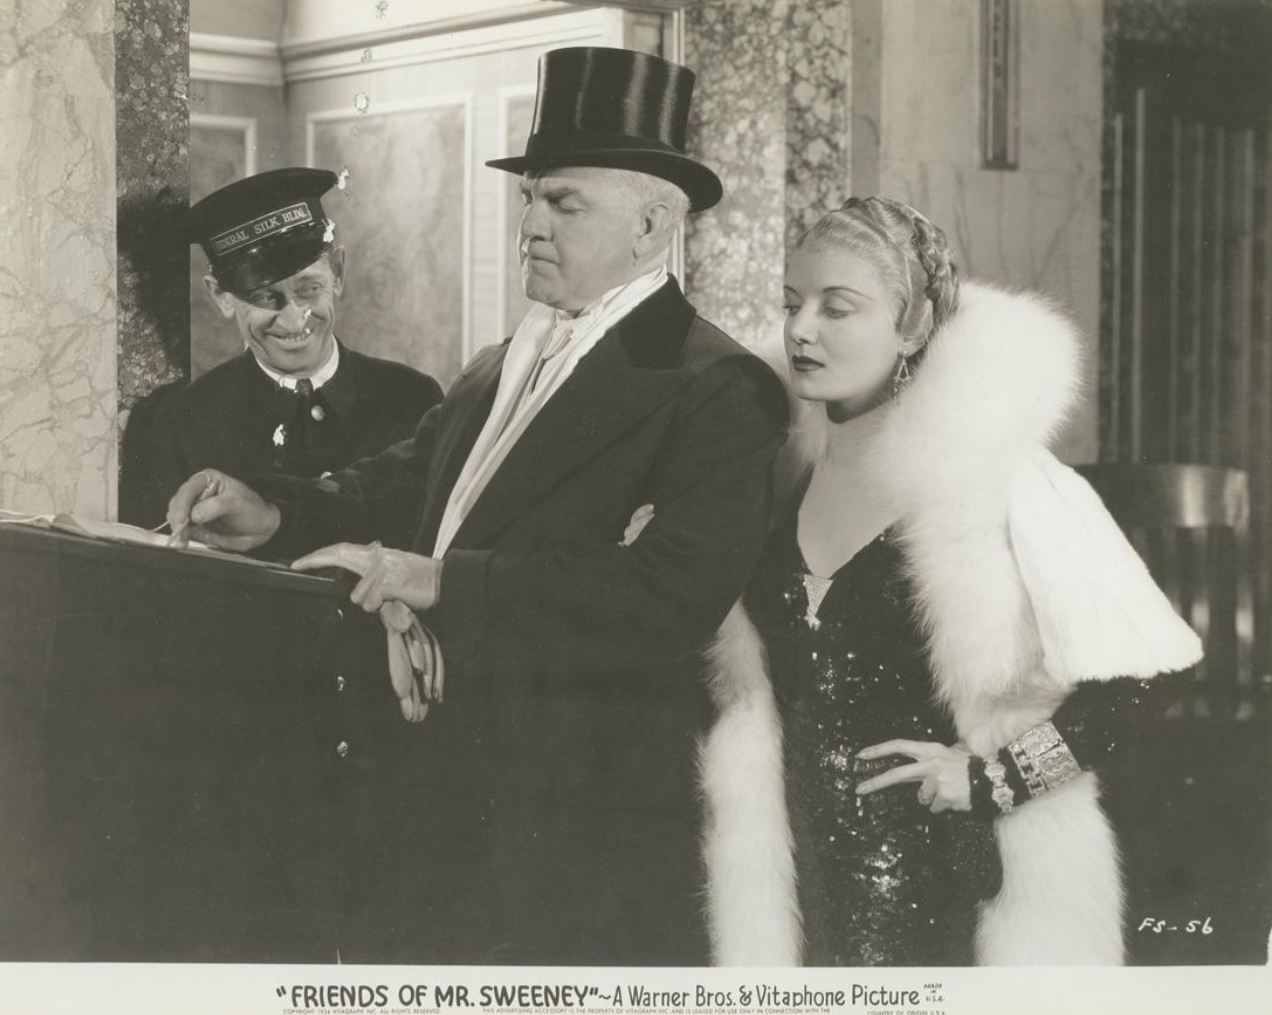 Harry Beresford, Berton Churchill, and Dorothy Tree in Friends of Mr. Sweeney (1934)